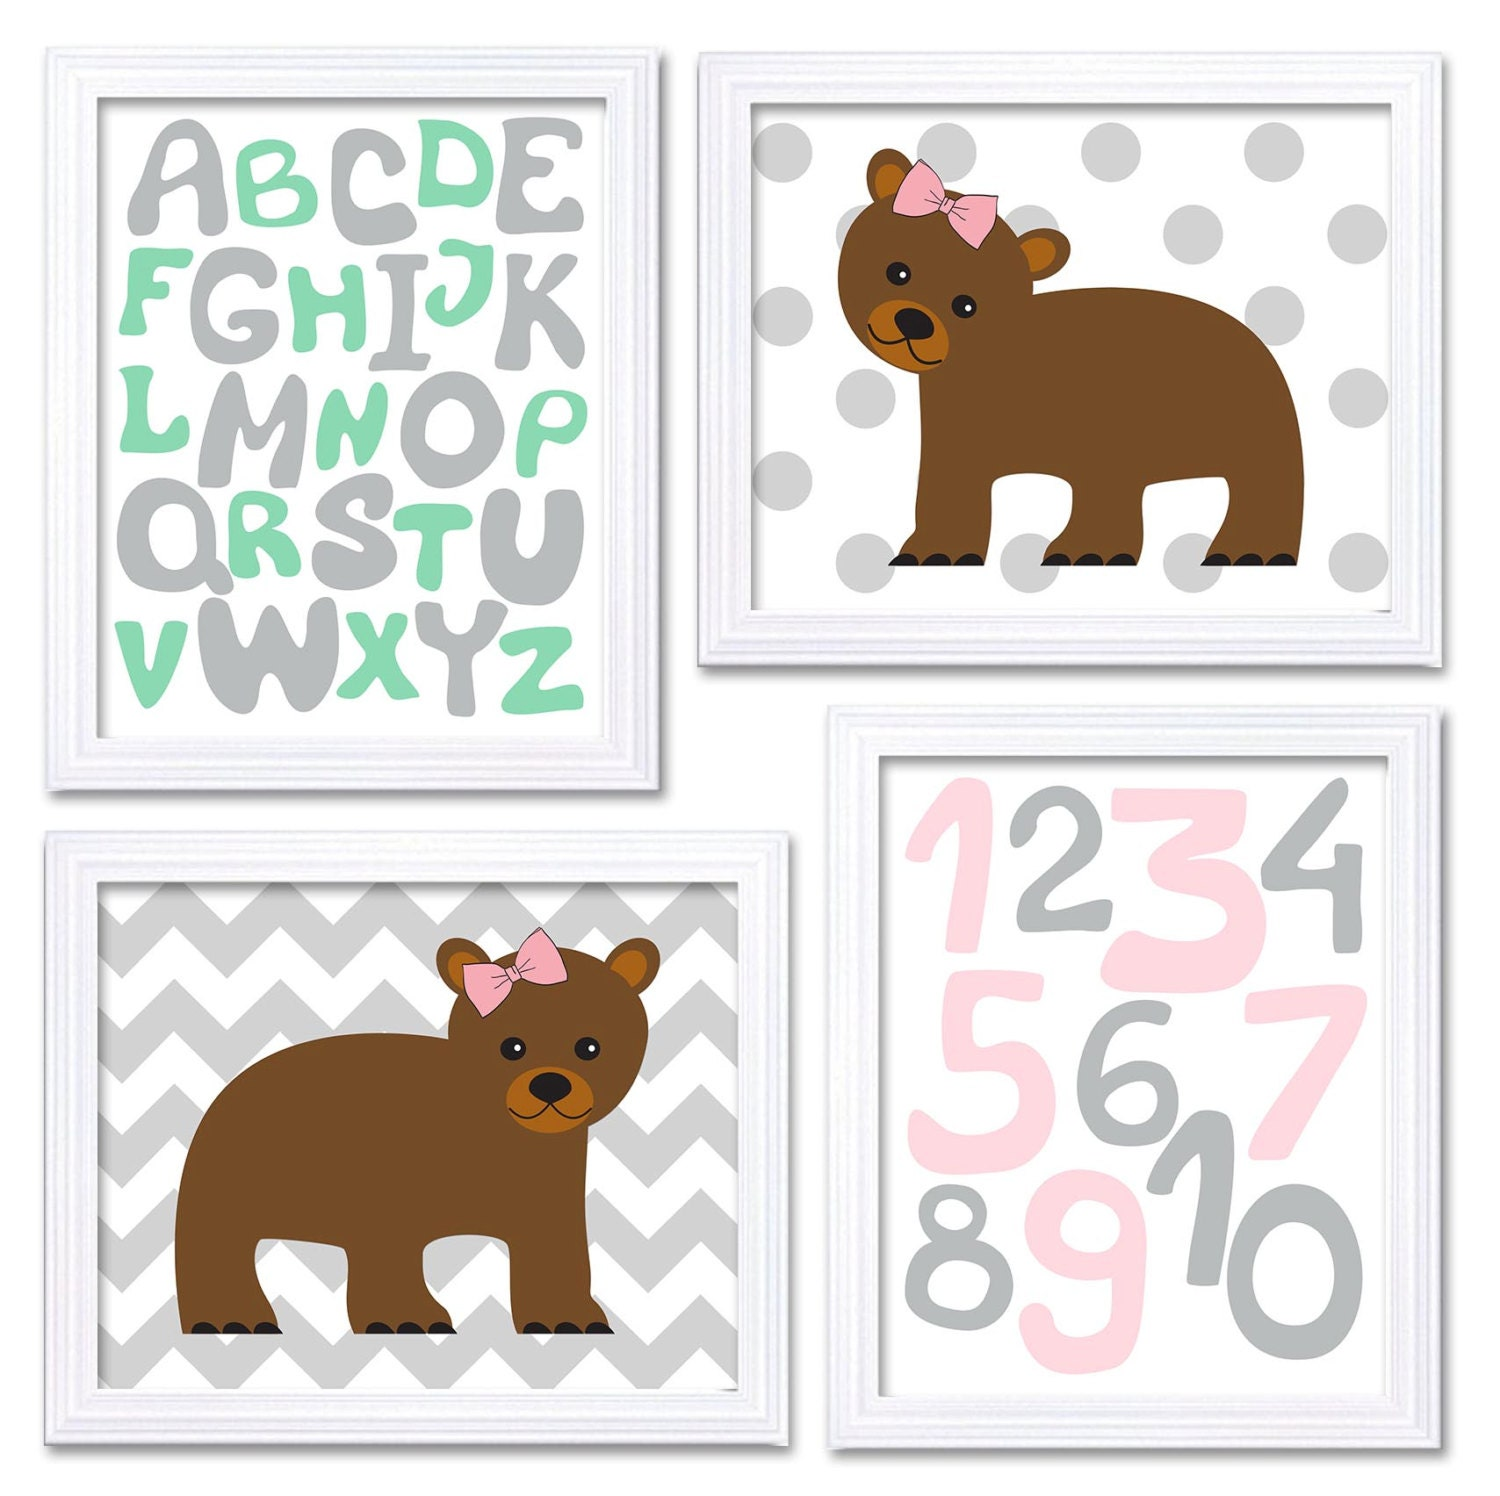 Bear Nursery Art Baby Wall Decor Alphabet ABC 123 Numbers Set of 4 Prints Mint Green Pink Grey Child